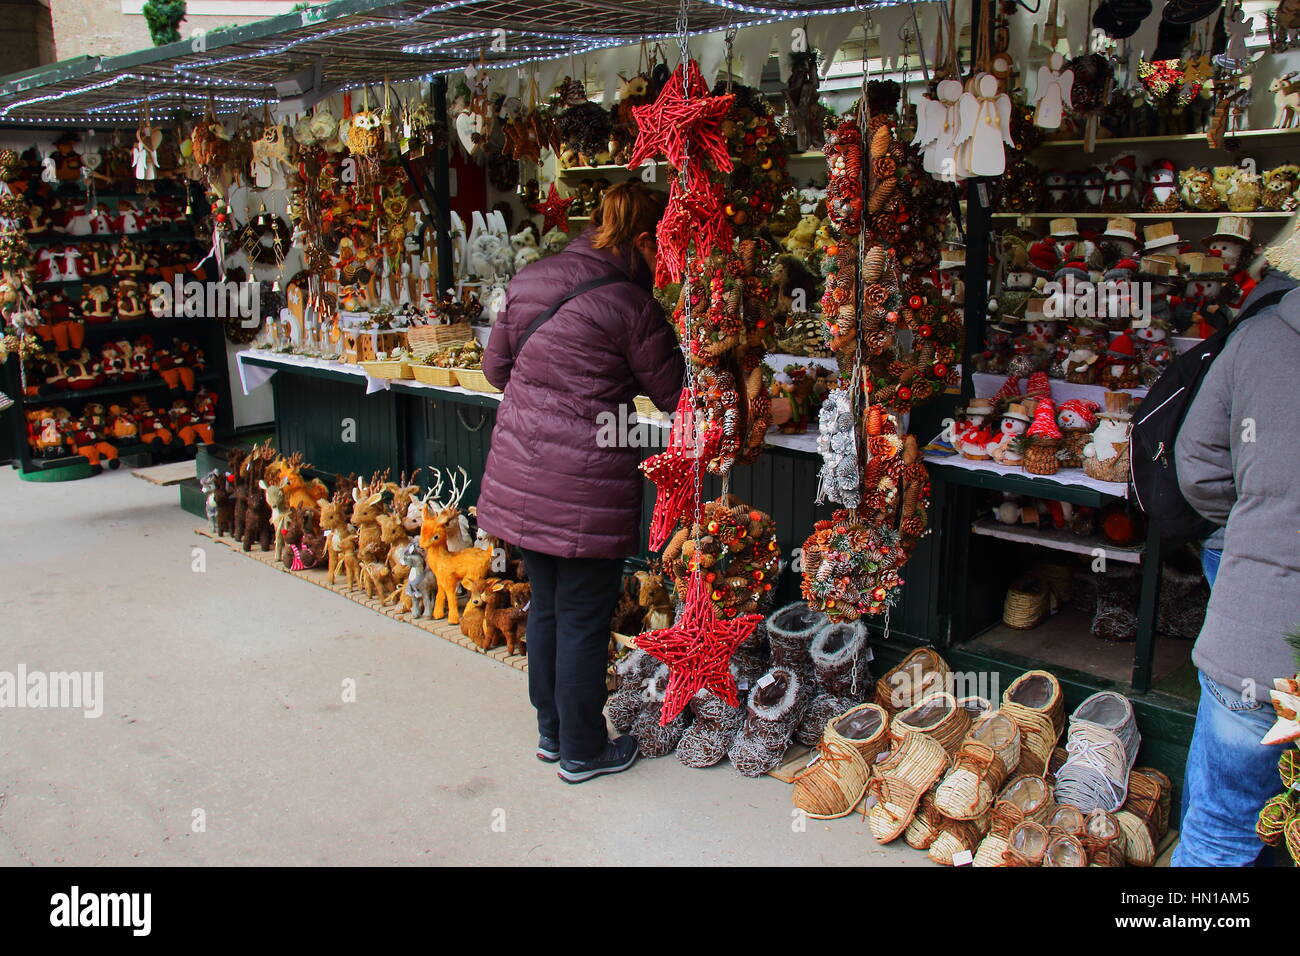 Christmas markets in Europe are an annual celebration image in landscape format with copy space - Stock Image